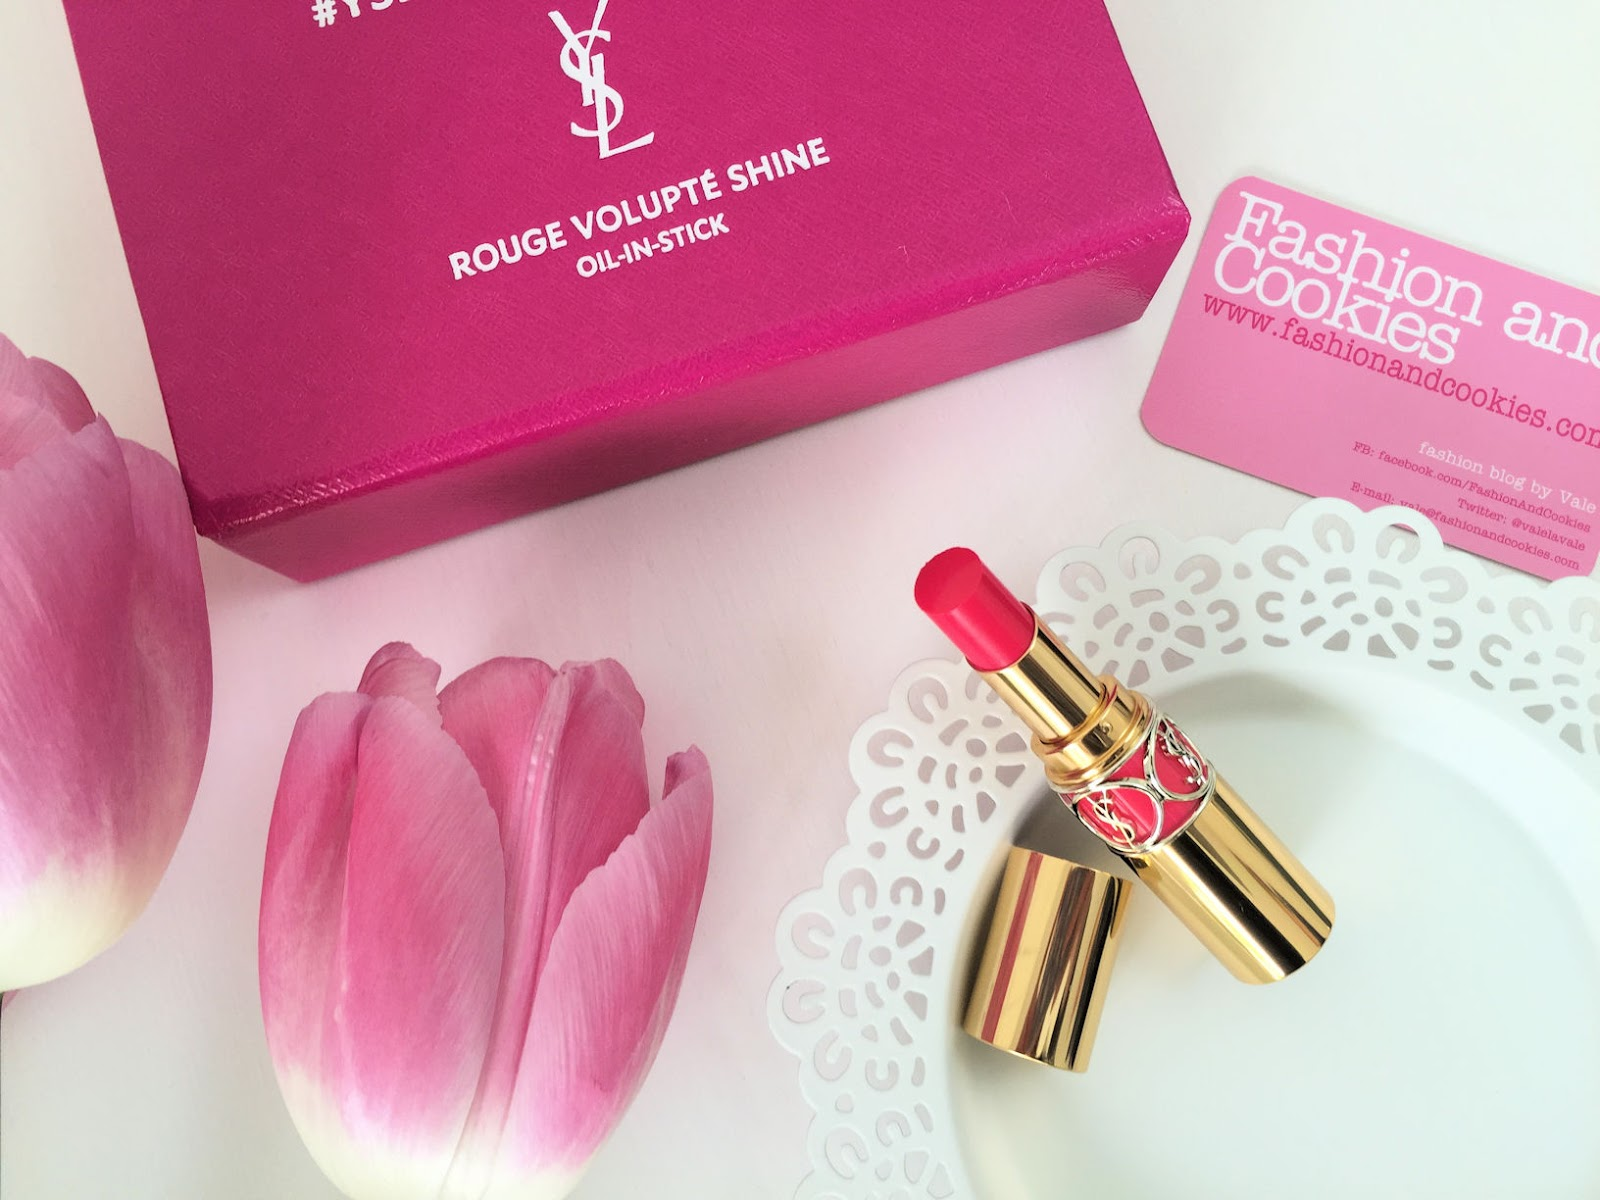 YSL Rouge Volupté Shine lipstick review on Fashion and Cookies beauty blog, beauty blogger